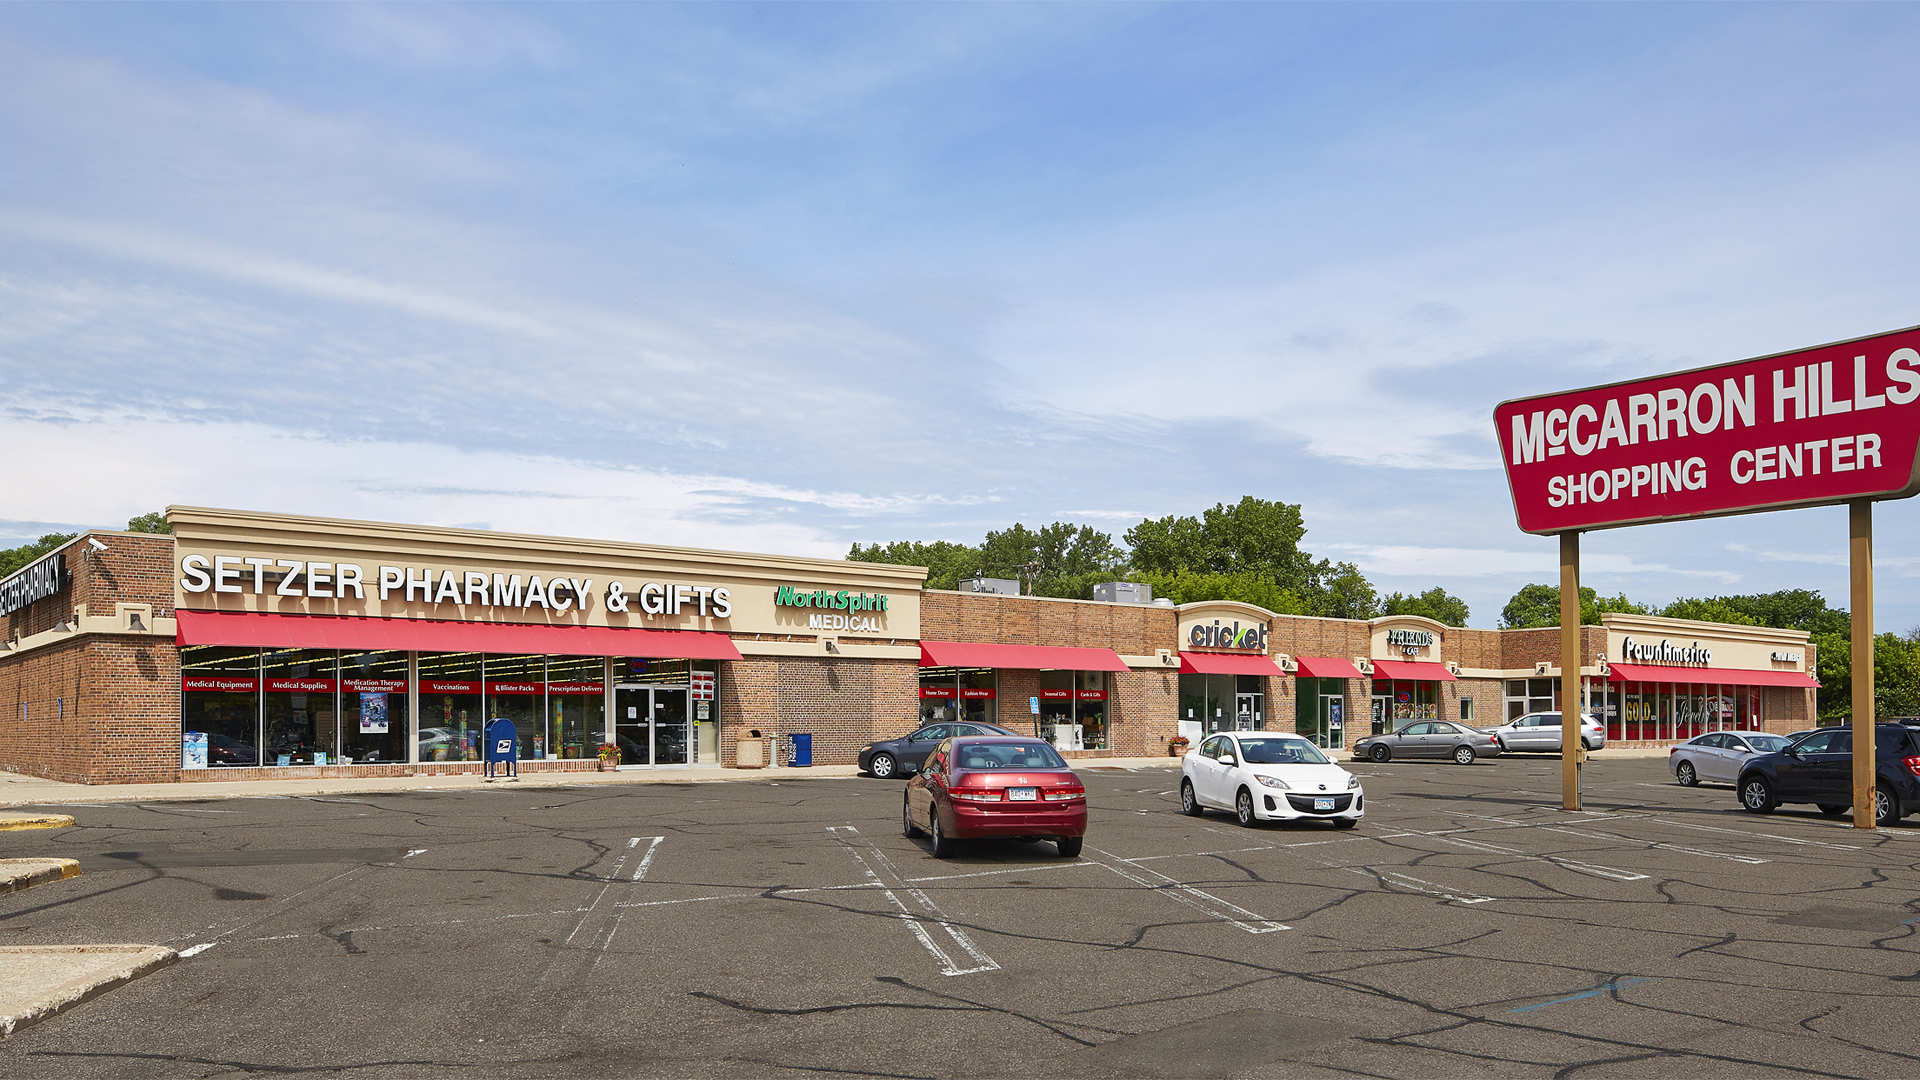 McCarron Hills Retail Shopping Center Roseville MN exterior view with marquee